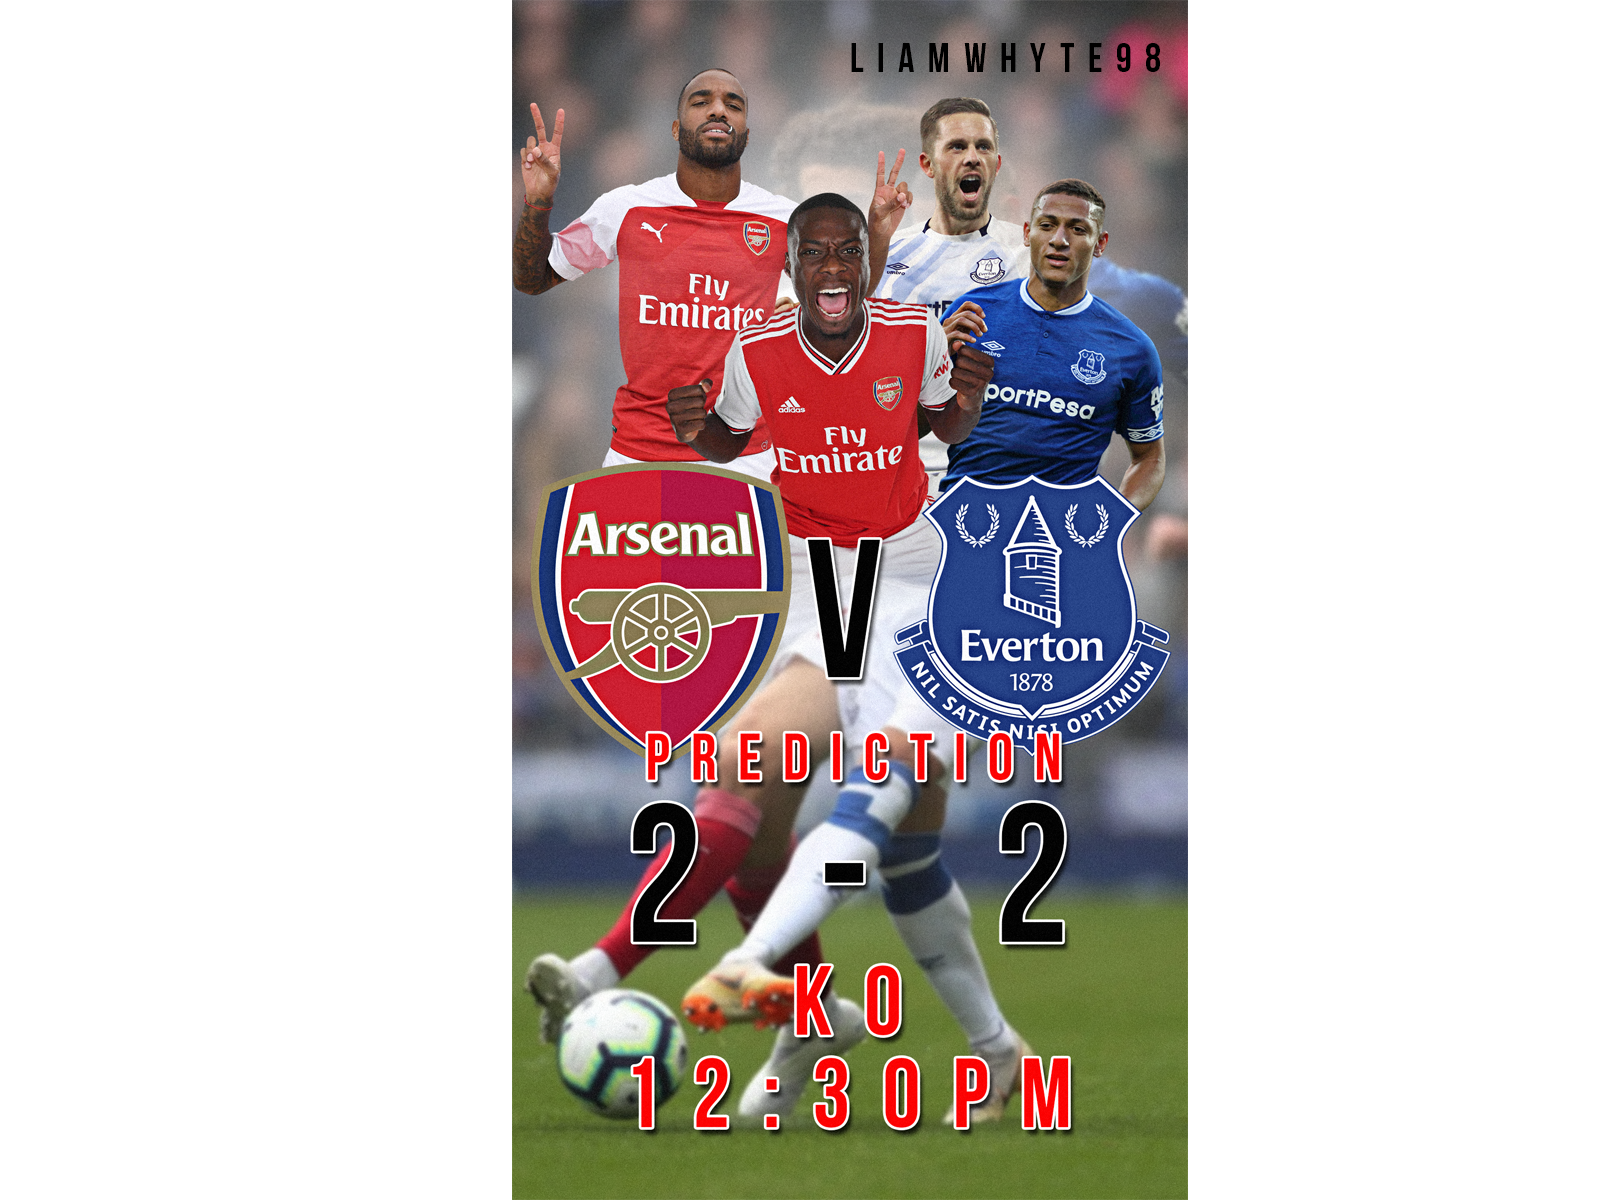 Arsenal Vs Everton Prediction Design By Liam Whyte On Dribbble